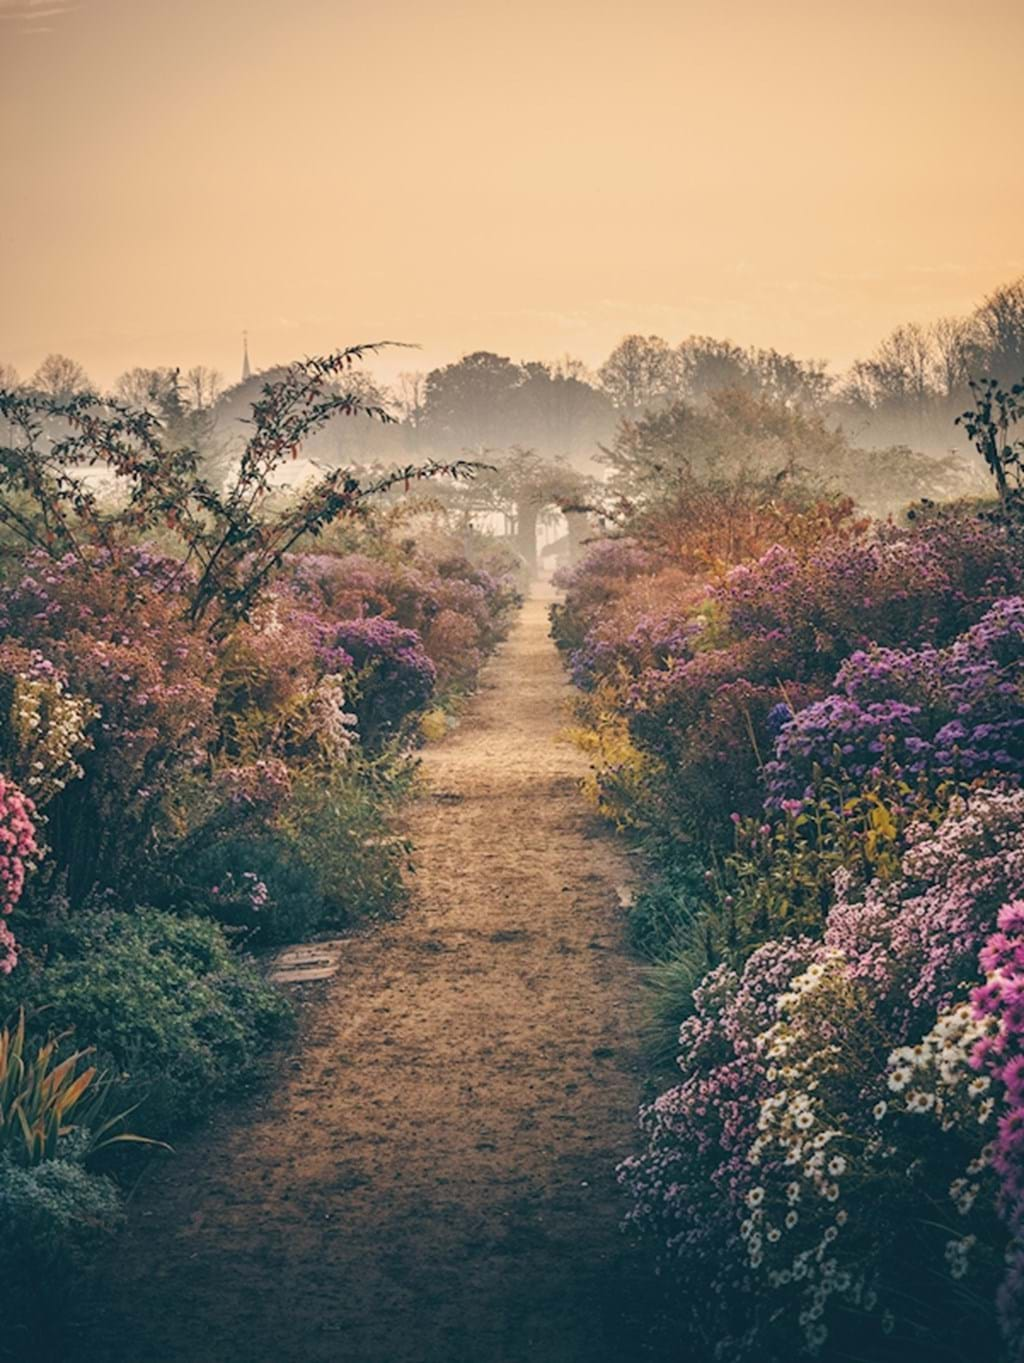 Poster: Through the fog & the flowers - Nature